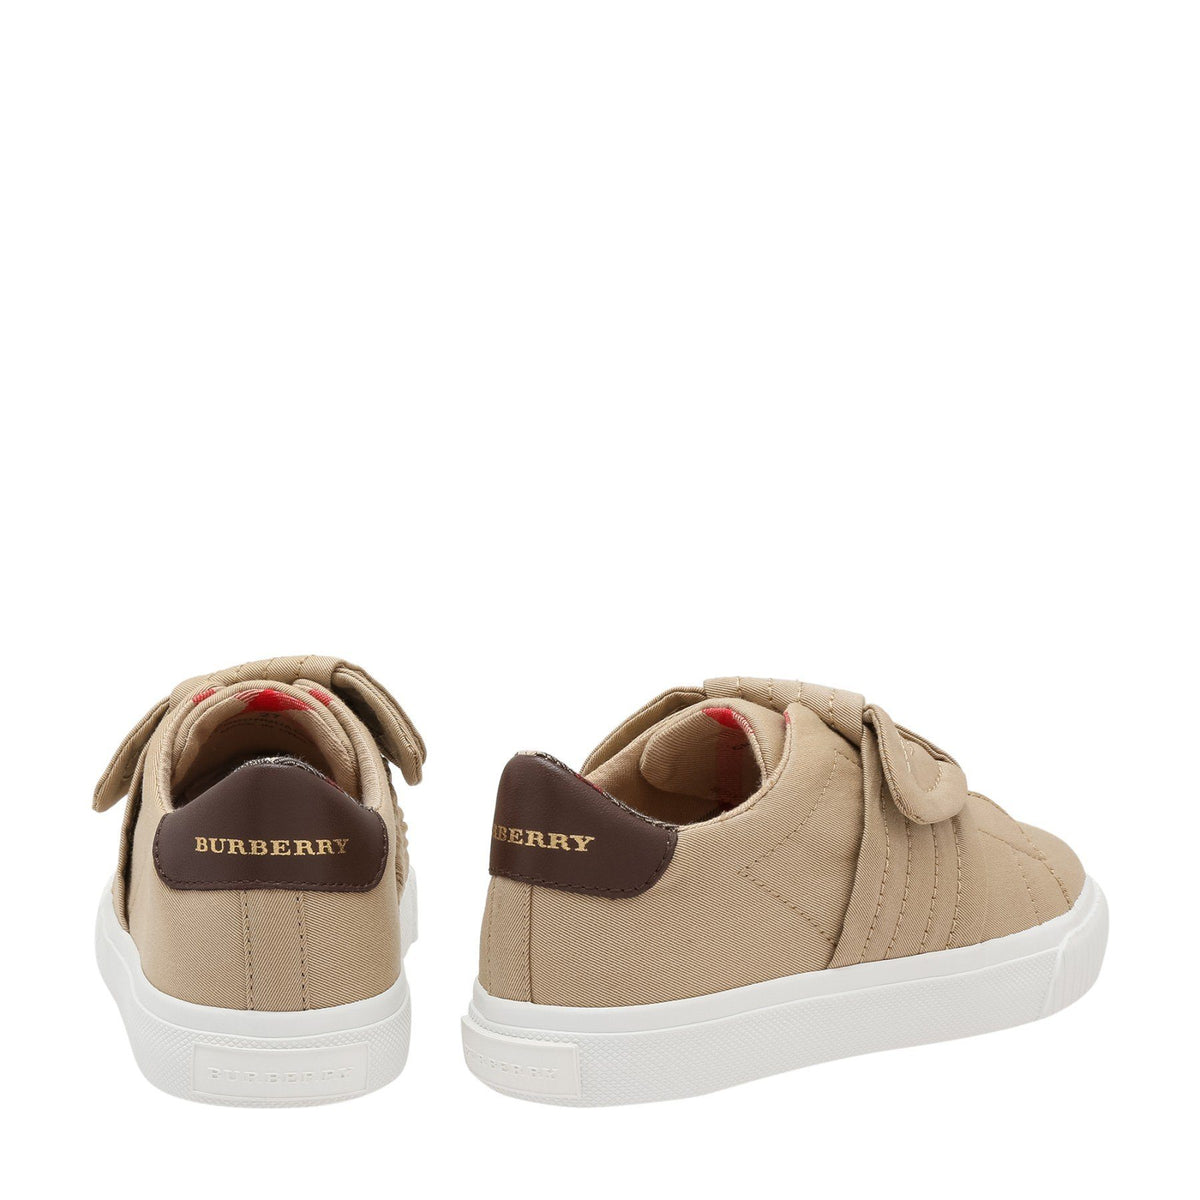 Burberry Mini Westford Trainers For Boys, Brown